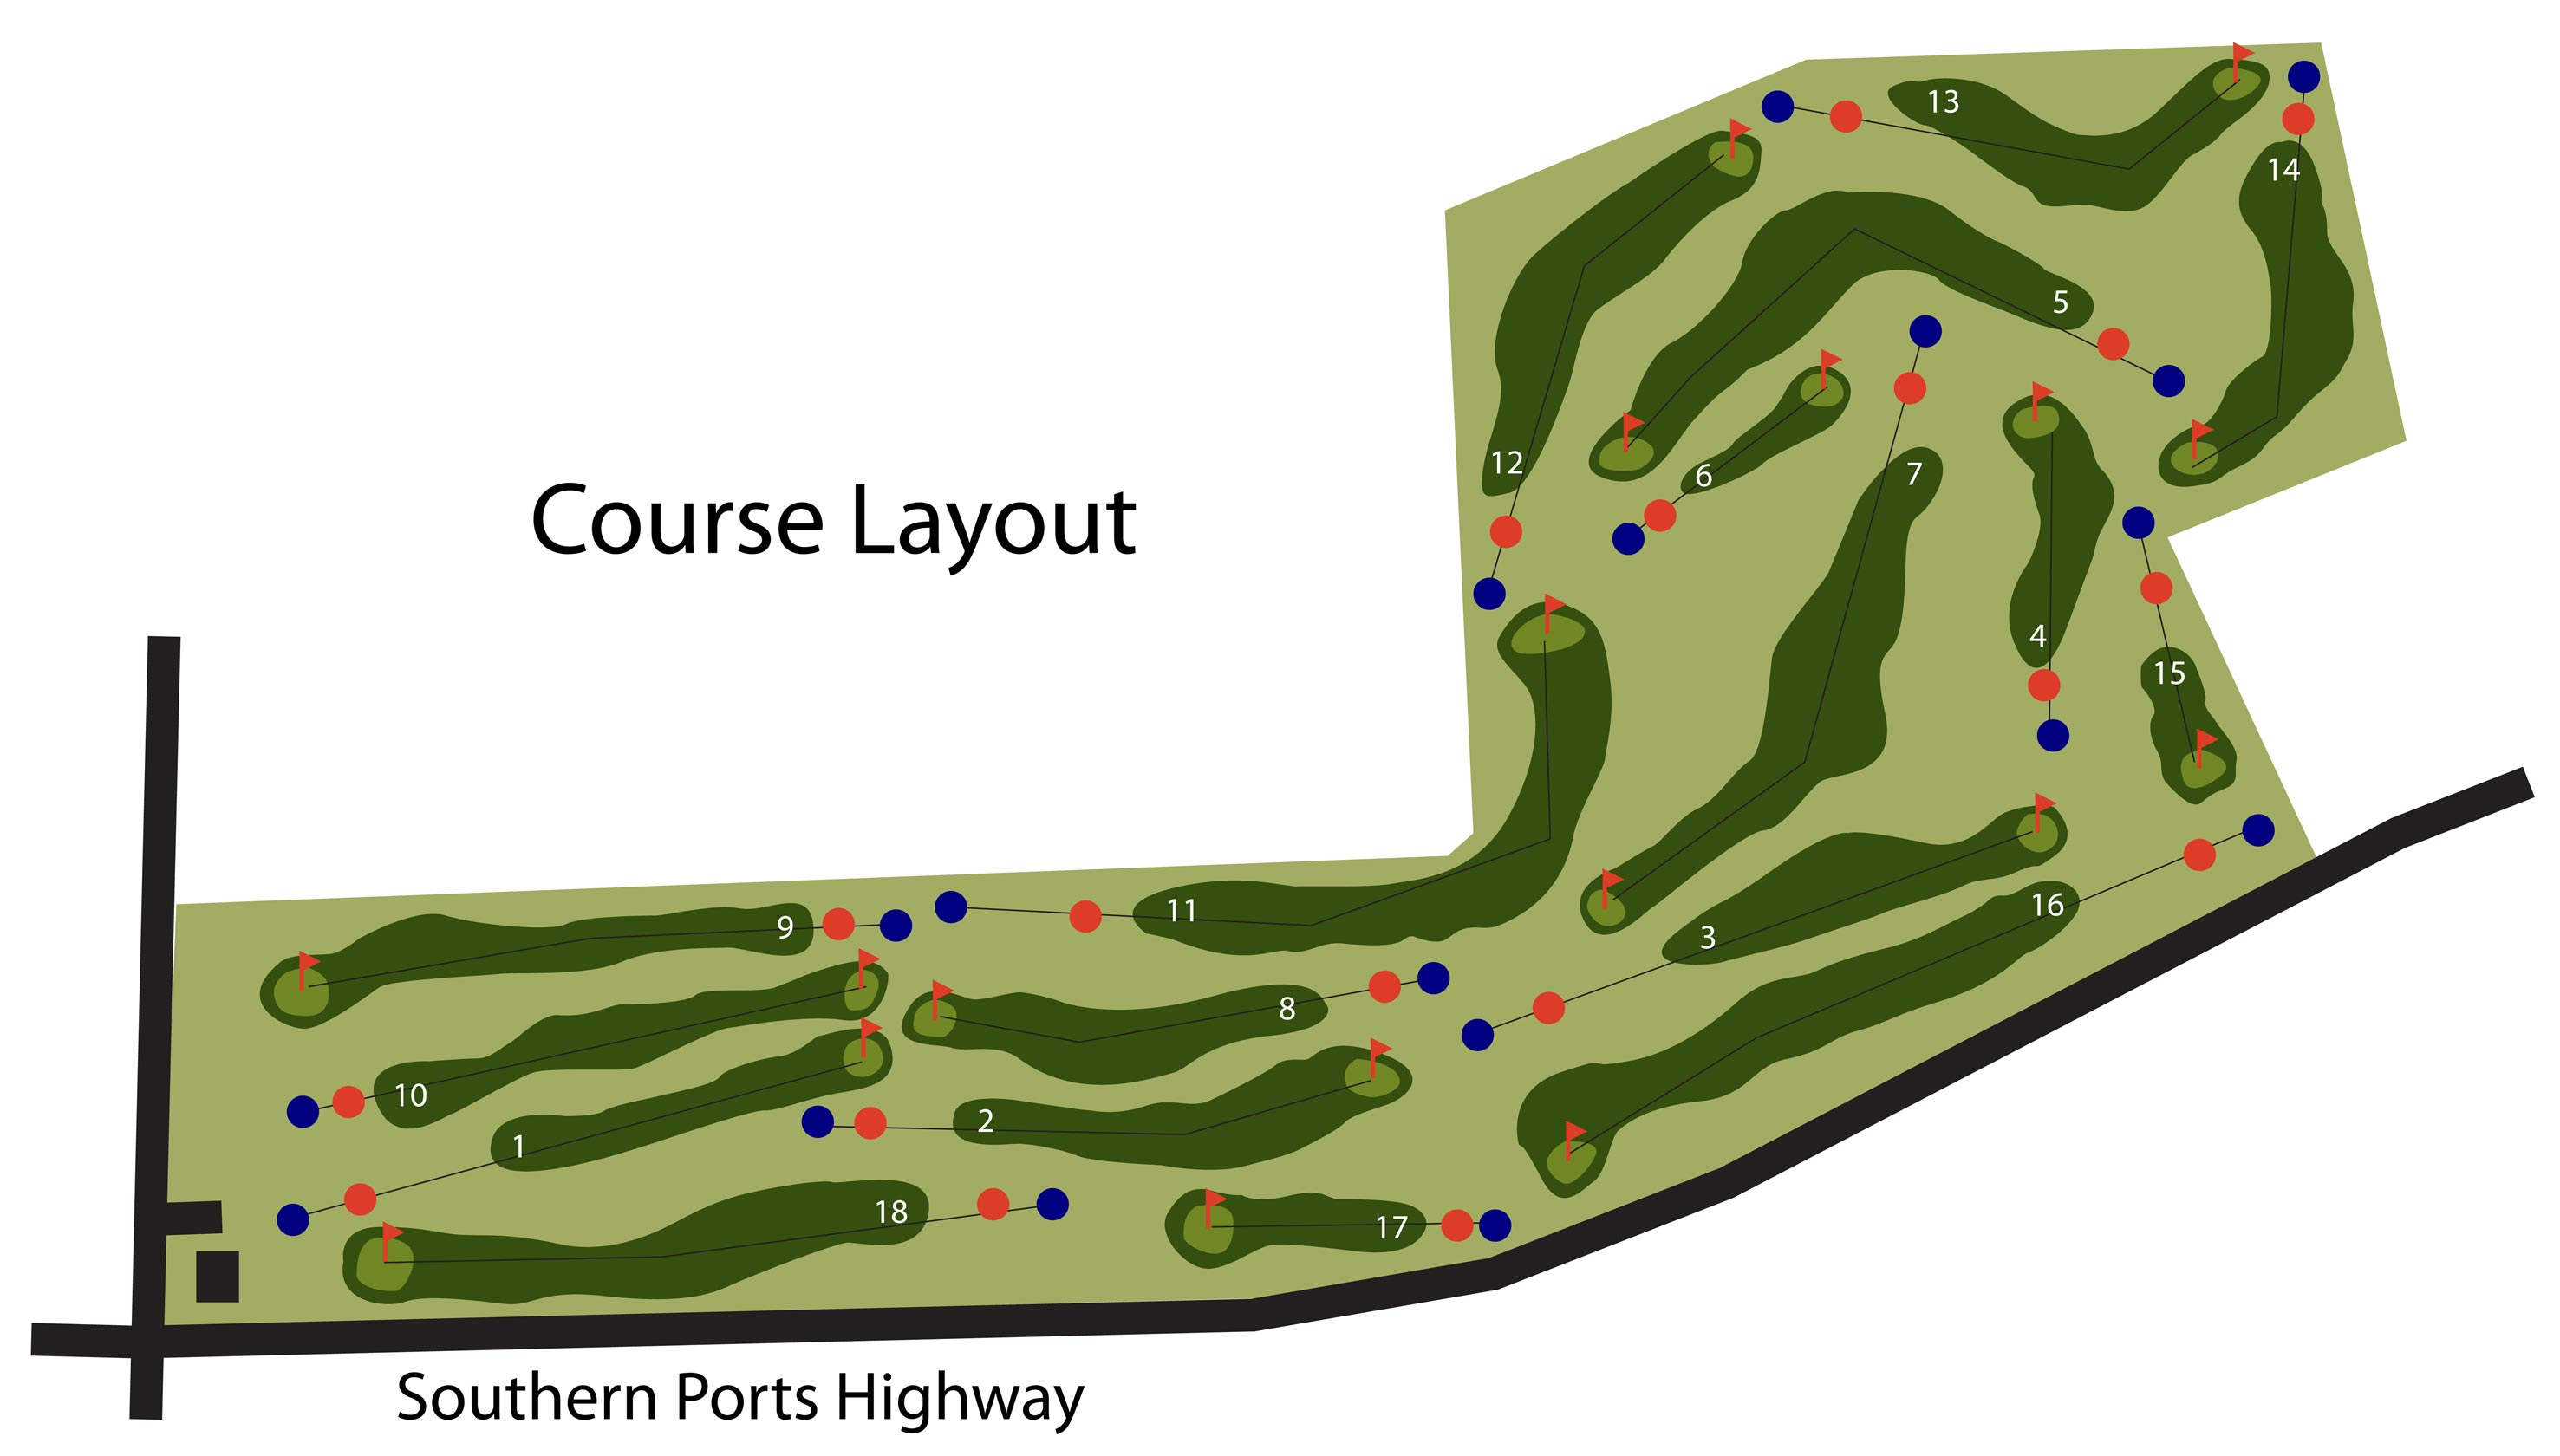 Kingston Golf Course Layout